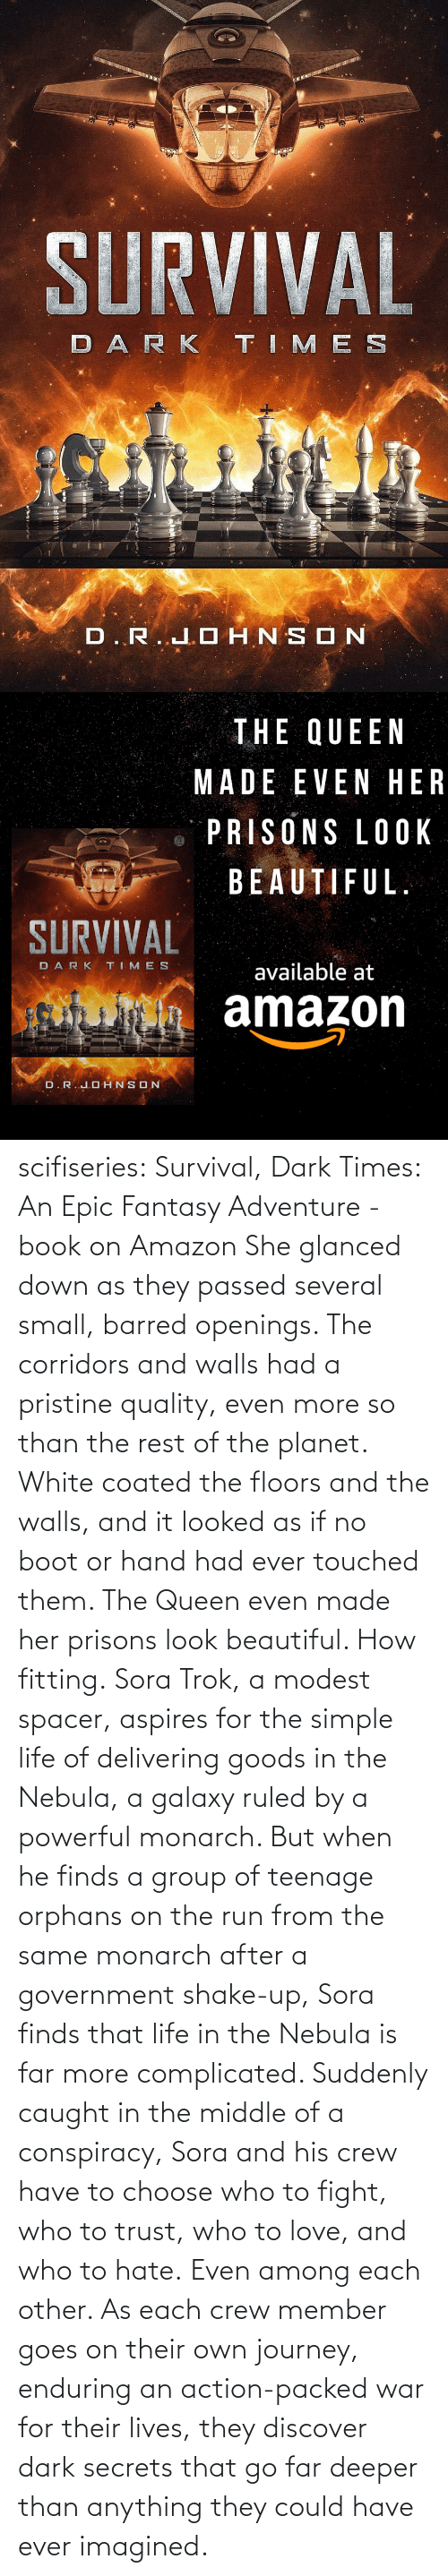 complicated: scifiseries: Survival, Dark Times: An Epic Fantasy Adventure - book on Amazon  She glanced down as they  passed several small, barred openings. The corridors and walls had a  pristine quality, even more so than the rest of the planet. White coated  the floors and the walls, and it looked as if no boot or hand had ever  touched them.  The Queen even made her prisons look beautiful.  How fitting. Sora  Trok, a modest spacer, aspires for the simple life of delivering goods  in the Nebula, a galaxy ruled by a powerful monarch. But when he finds a  group of teenage orphans on the run from the same monarch after a  government shake-up, Sora finds that life in the Nebula is far more complicated.  Suddenly  caught in the middle of a conspiracy, Sora and his crew have to choose  who to fight, who to trust, who to love, and who to hate. Even among each other.  As  each crew member goes on their own journey, enduring an action-packed  war for their lives, they discover dark secrets that go far deeper than  anything they could have ever imagined.